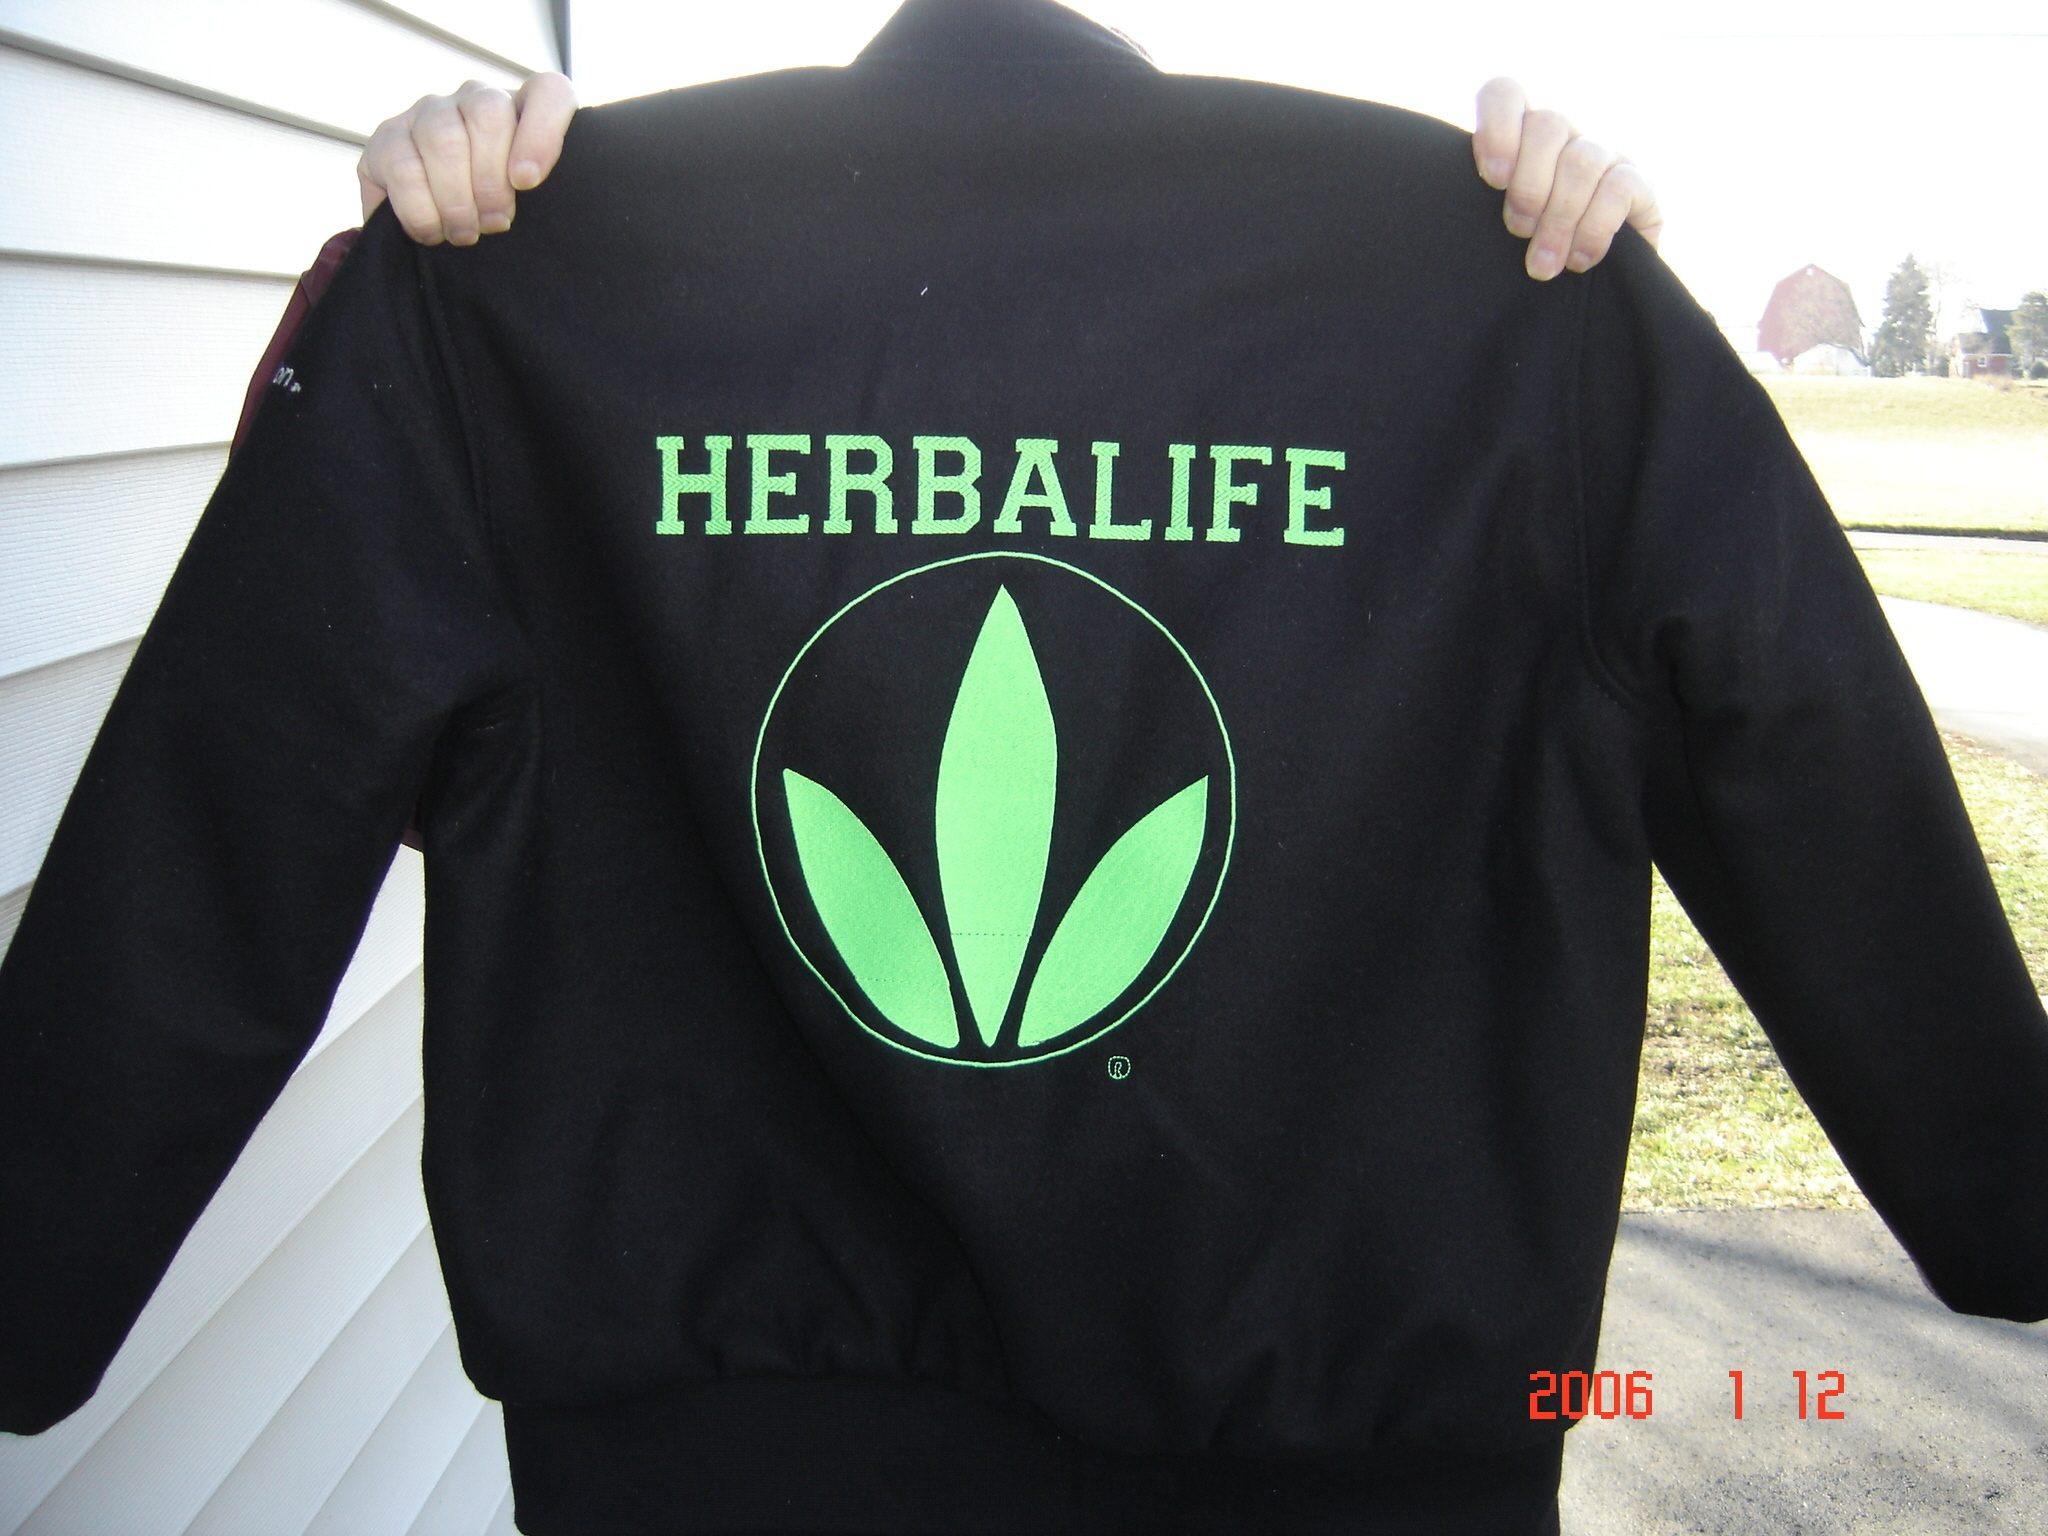 Herbalife images Herbalife pics HD wallpaper and background photos ...